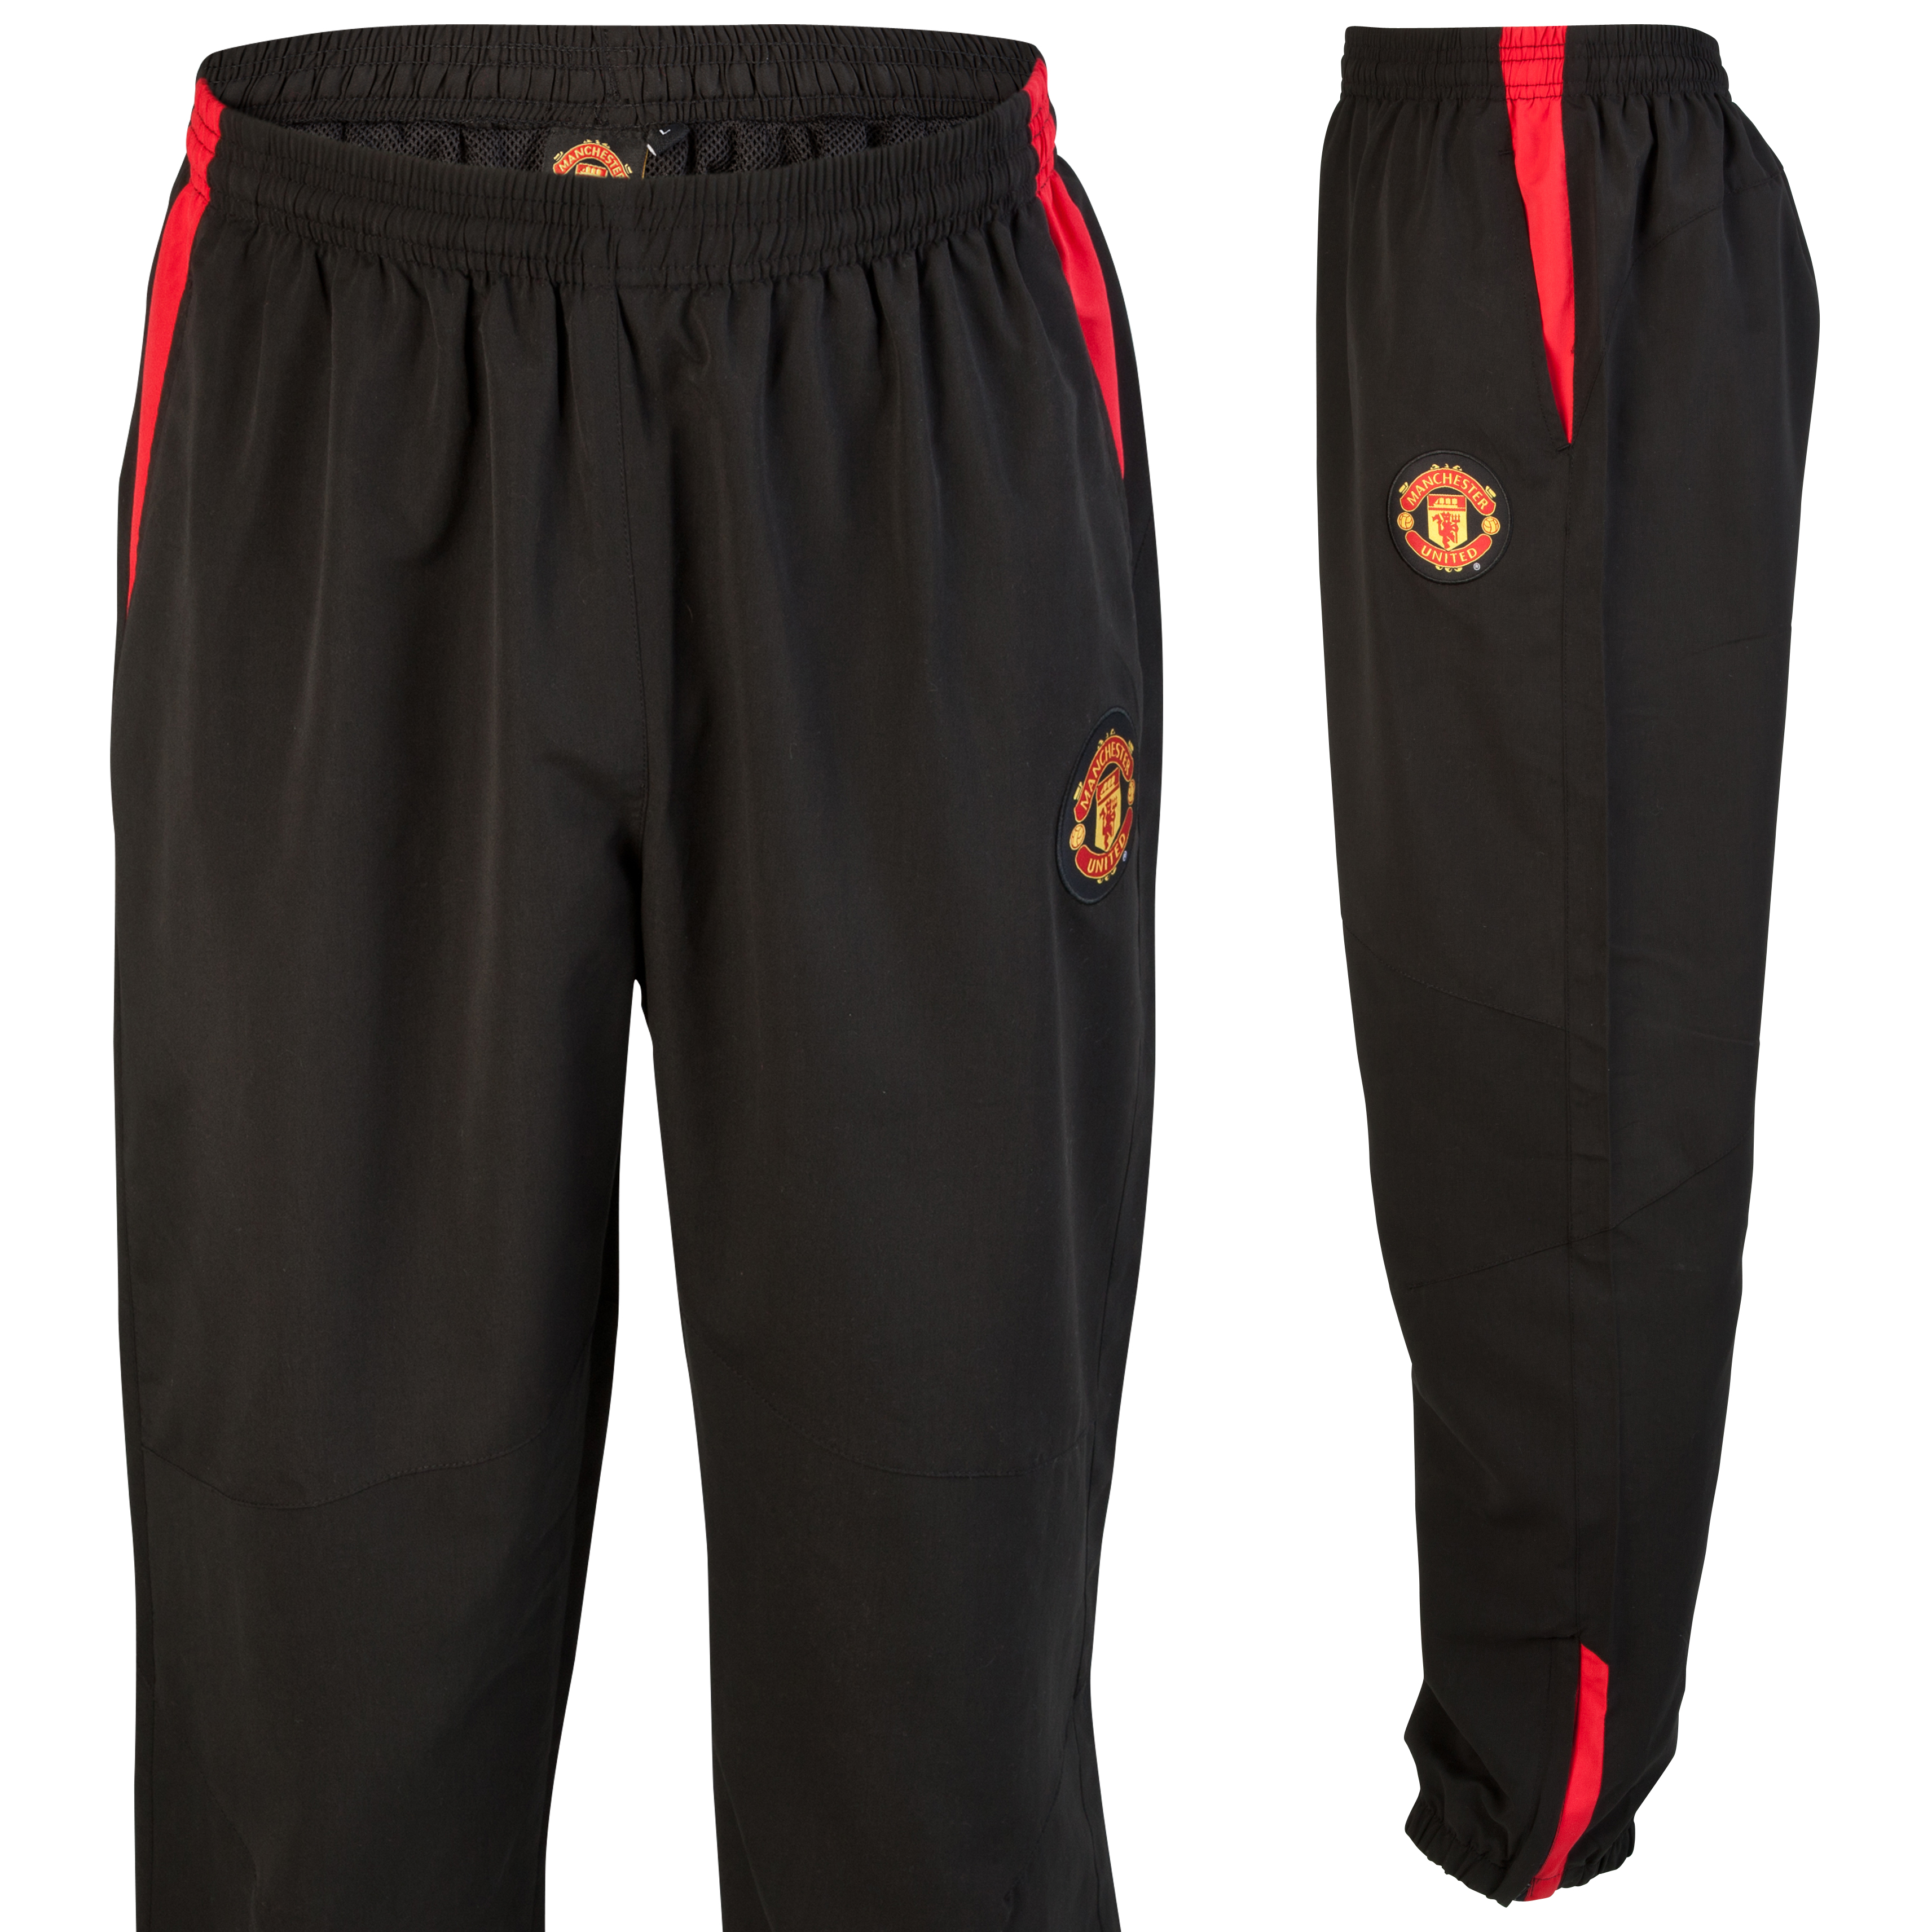 Manchester United Track Pant - Black - Older Boys